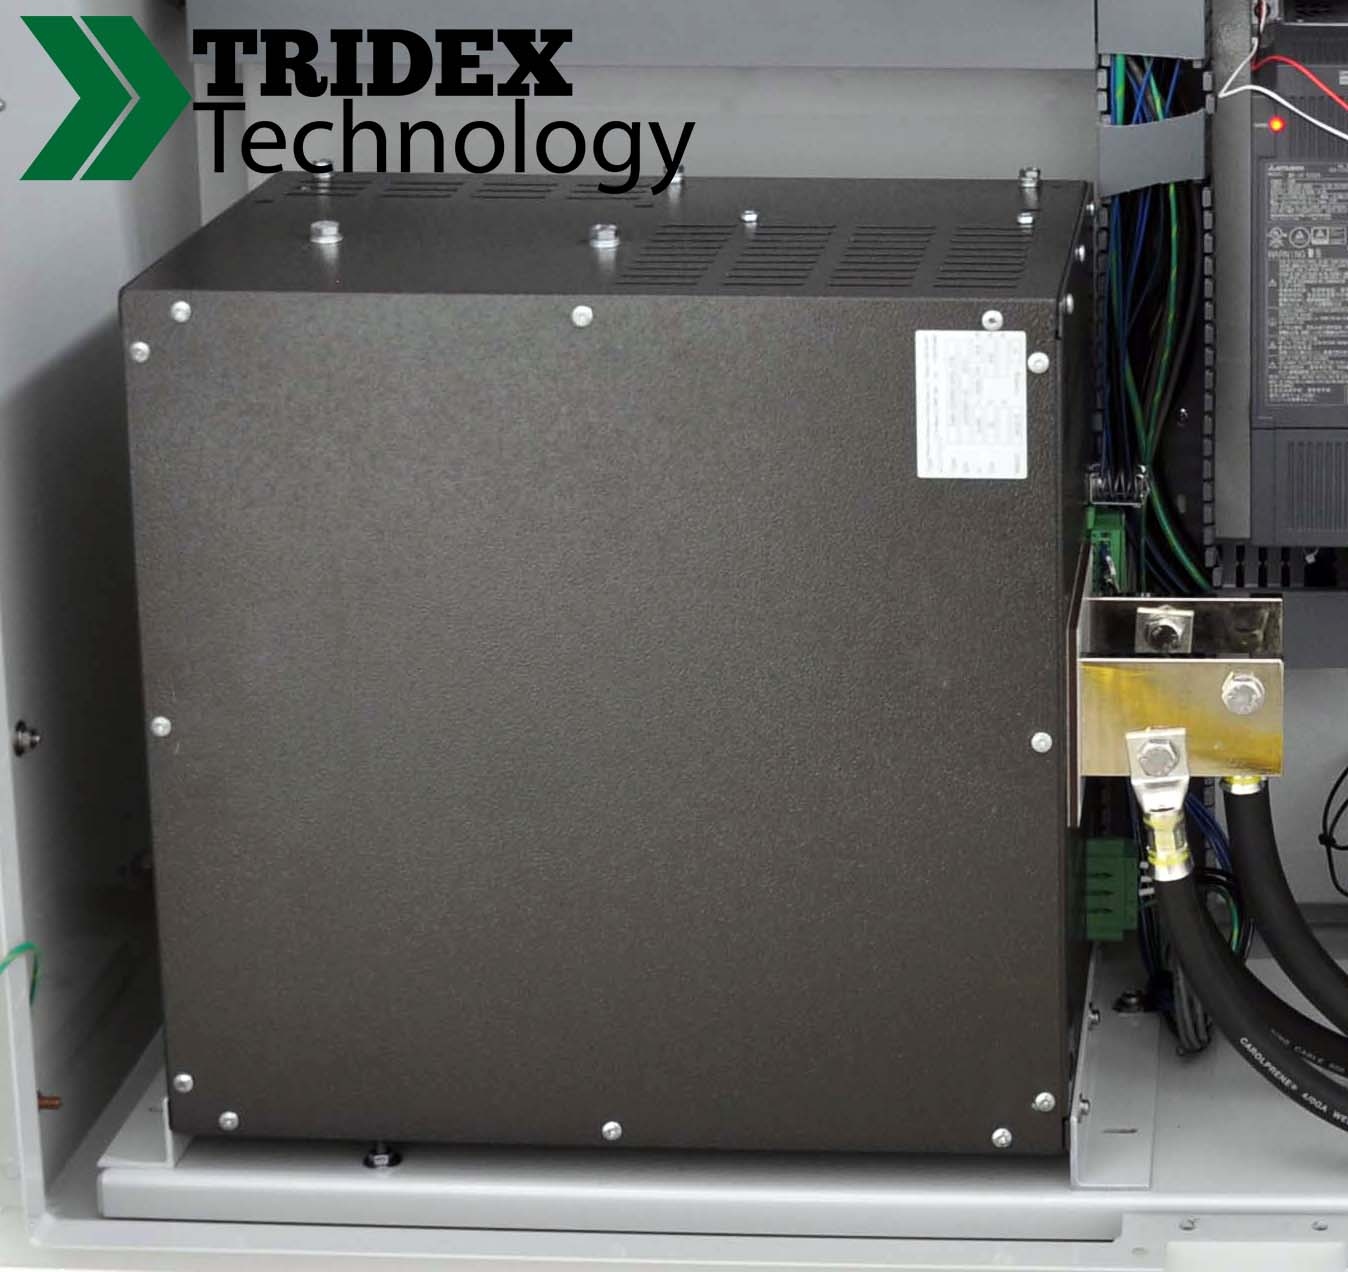 Tridex Solid State DC Power Supply